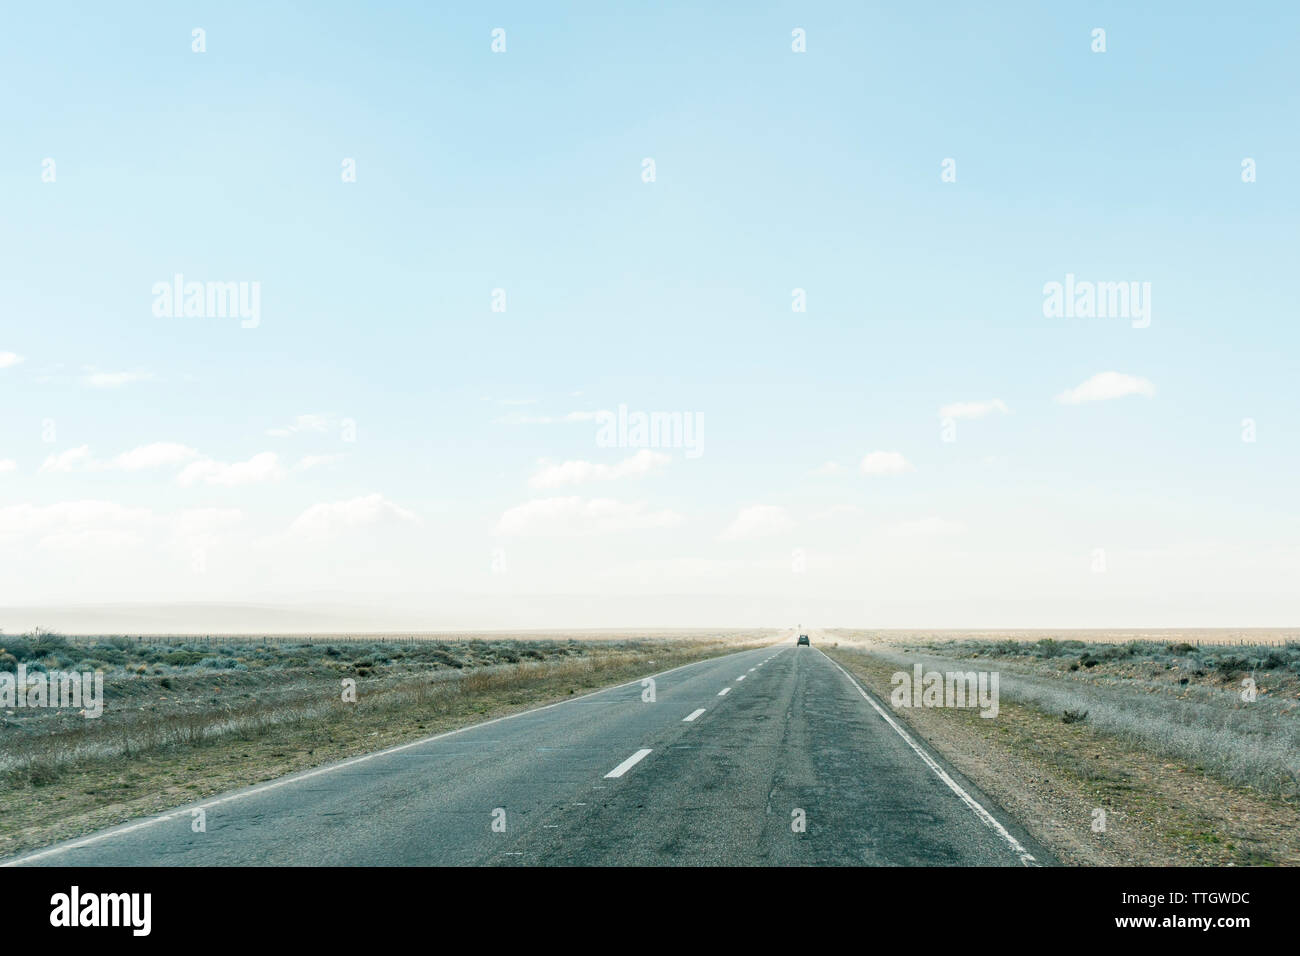 Driving along a remote flat road in Argentina on a sunny winter day. - Stock Image